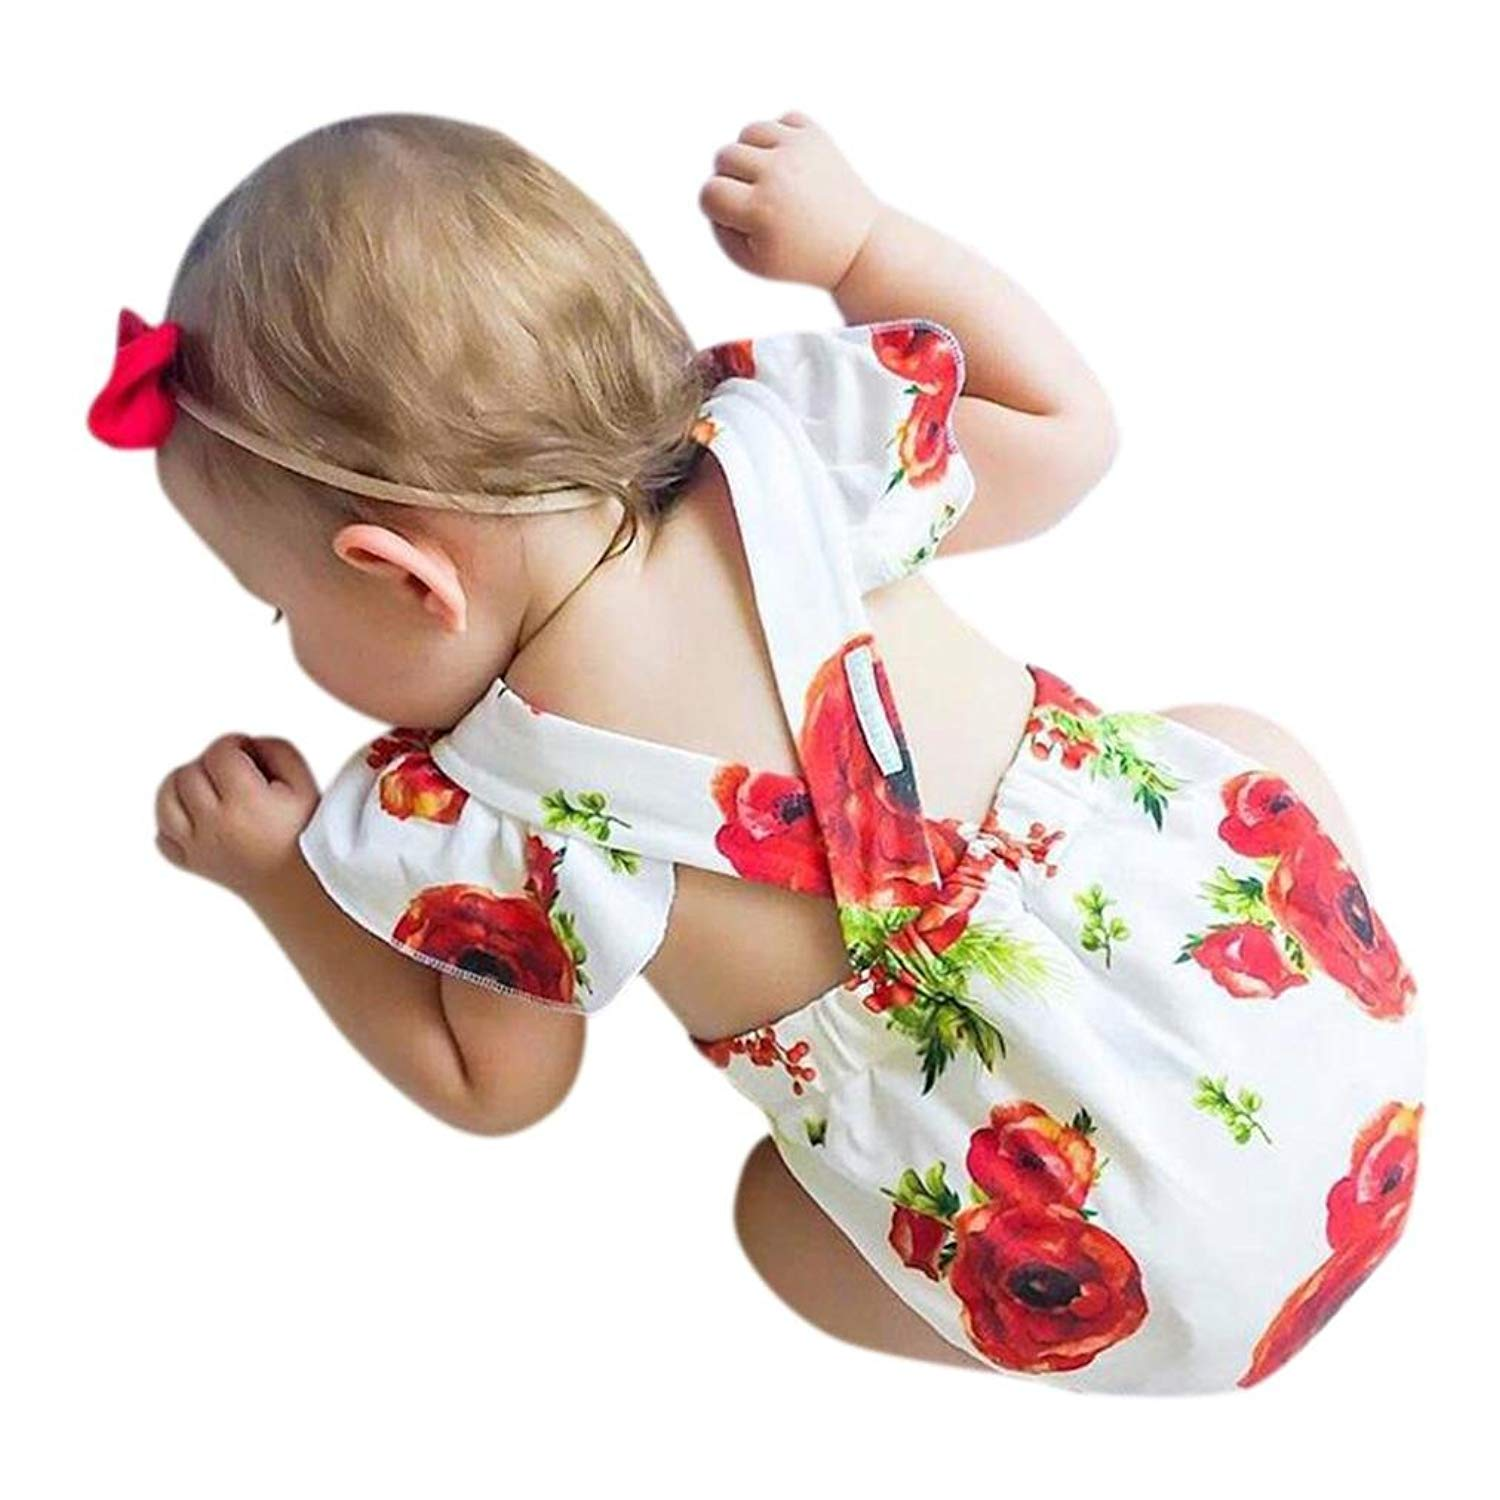 Ourhomer Baby Girls Dresses Toddler Summer Floral Print Girls Casual Beach Outfits Clothes Romper Jumpsuit